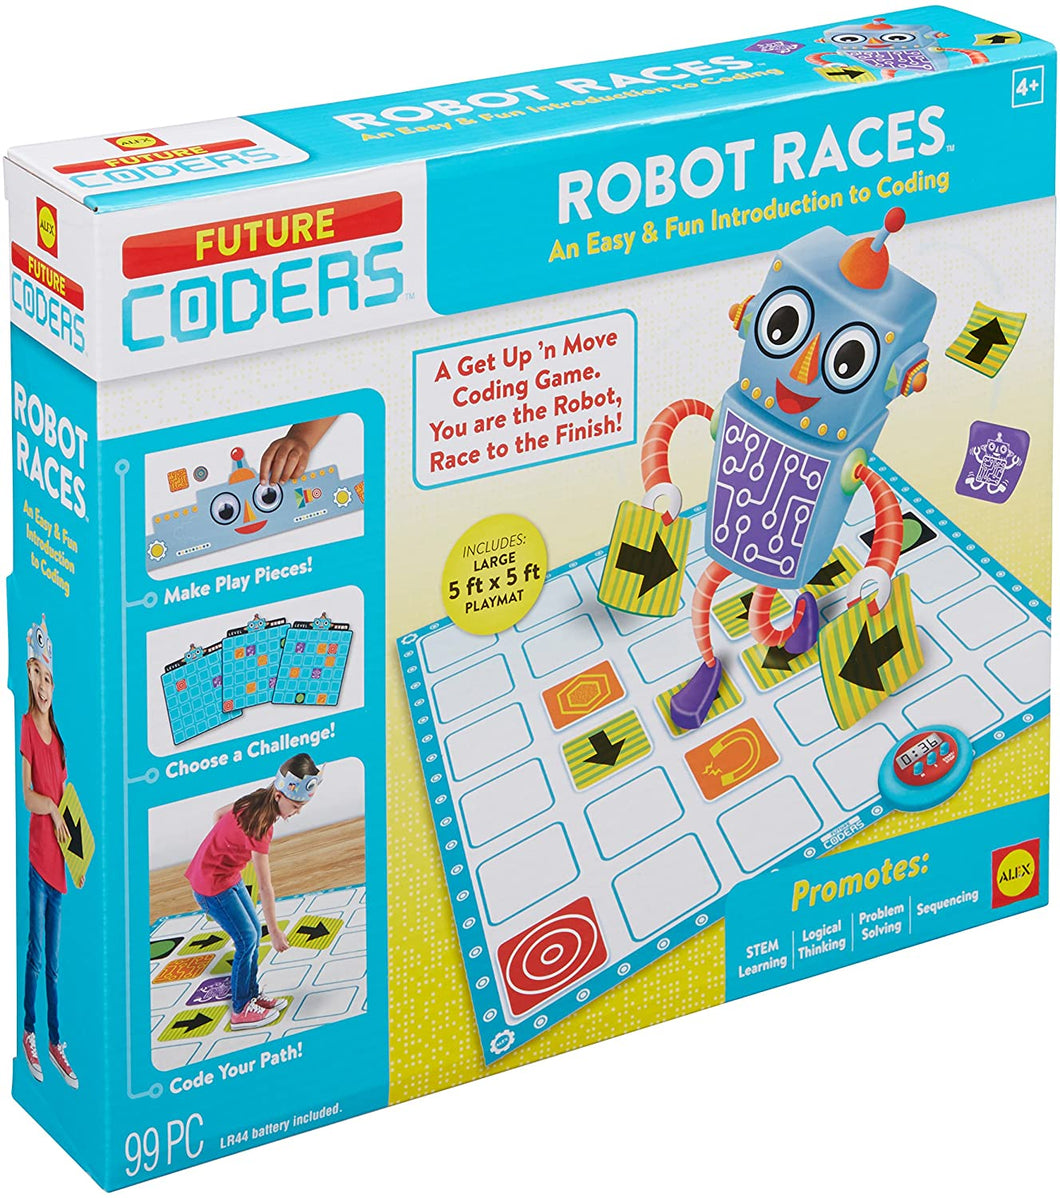 Future coders robot races game